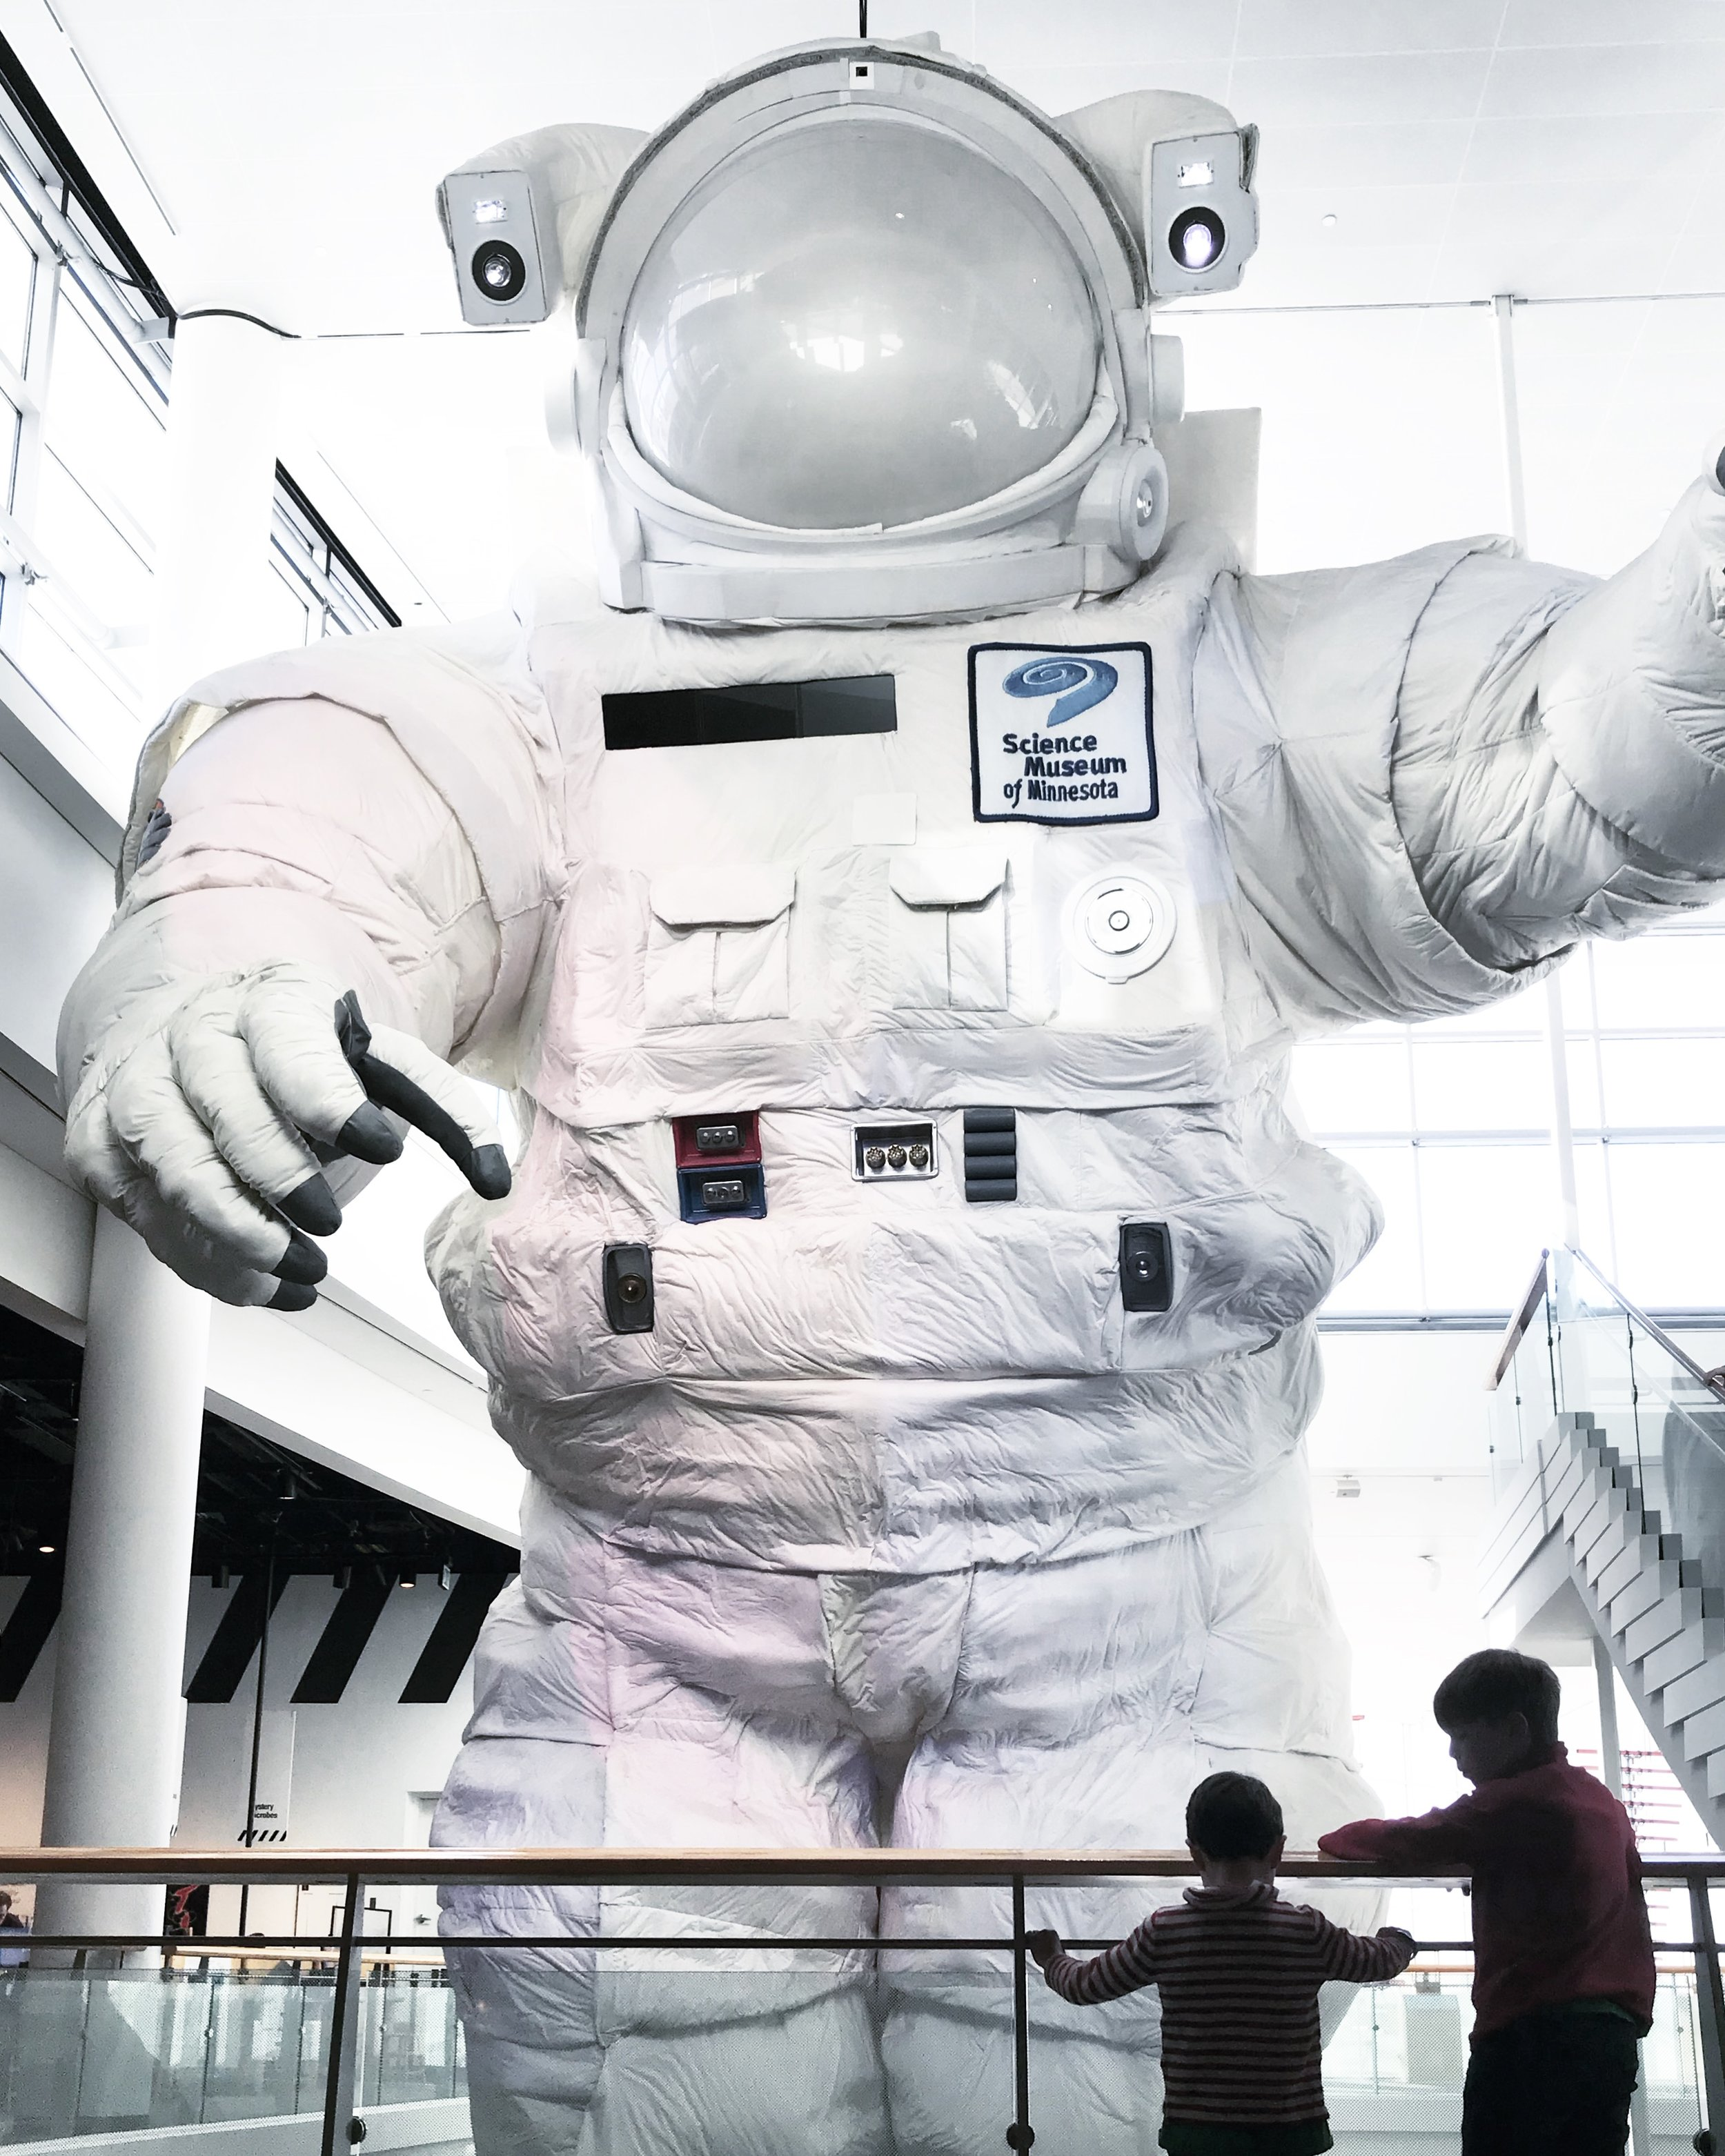 A visit to the Science Museum in St Paul, Minnesota